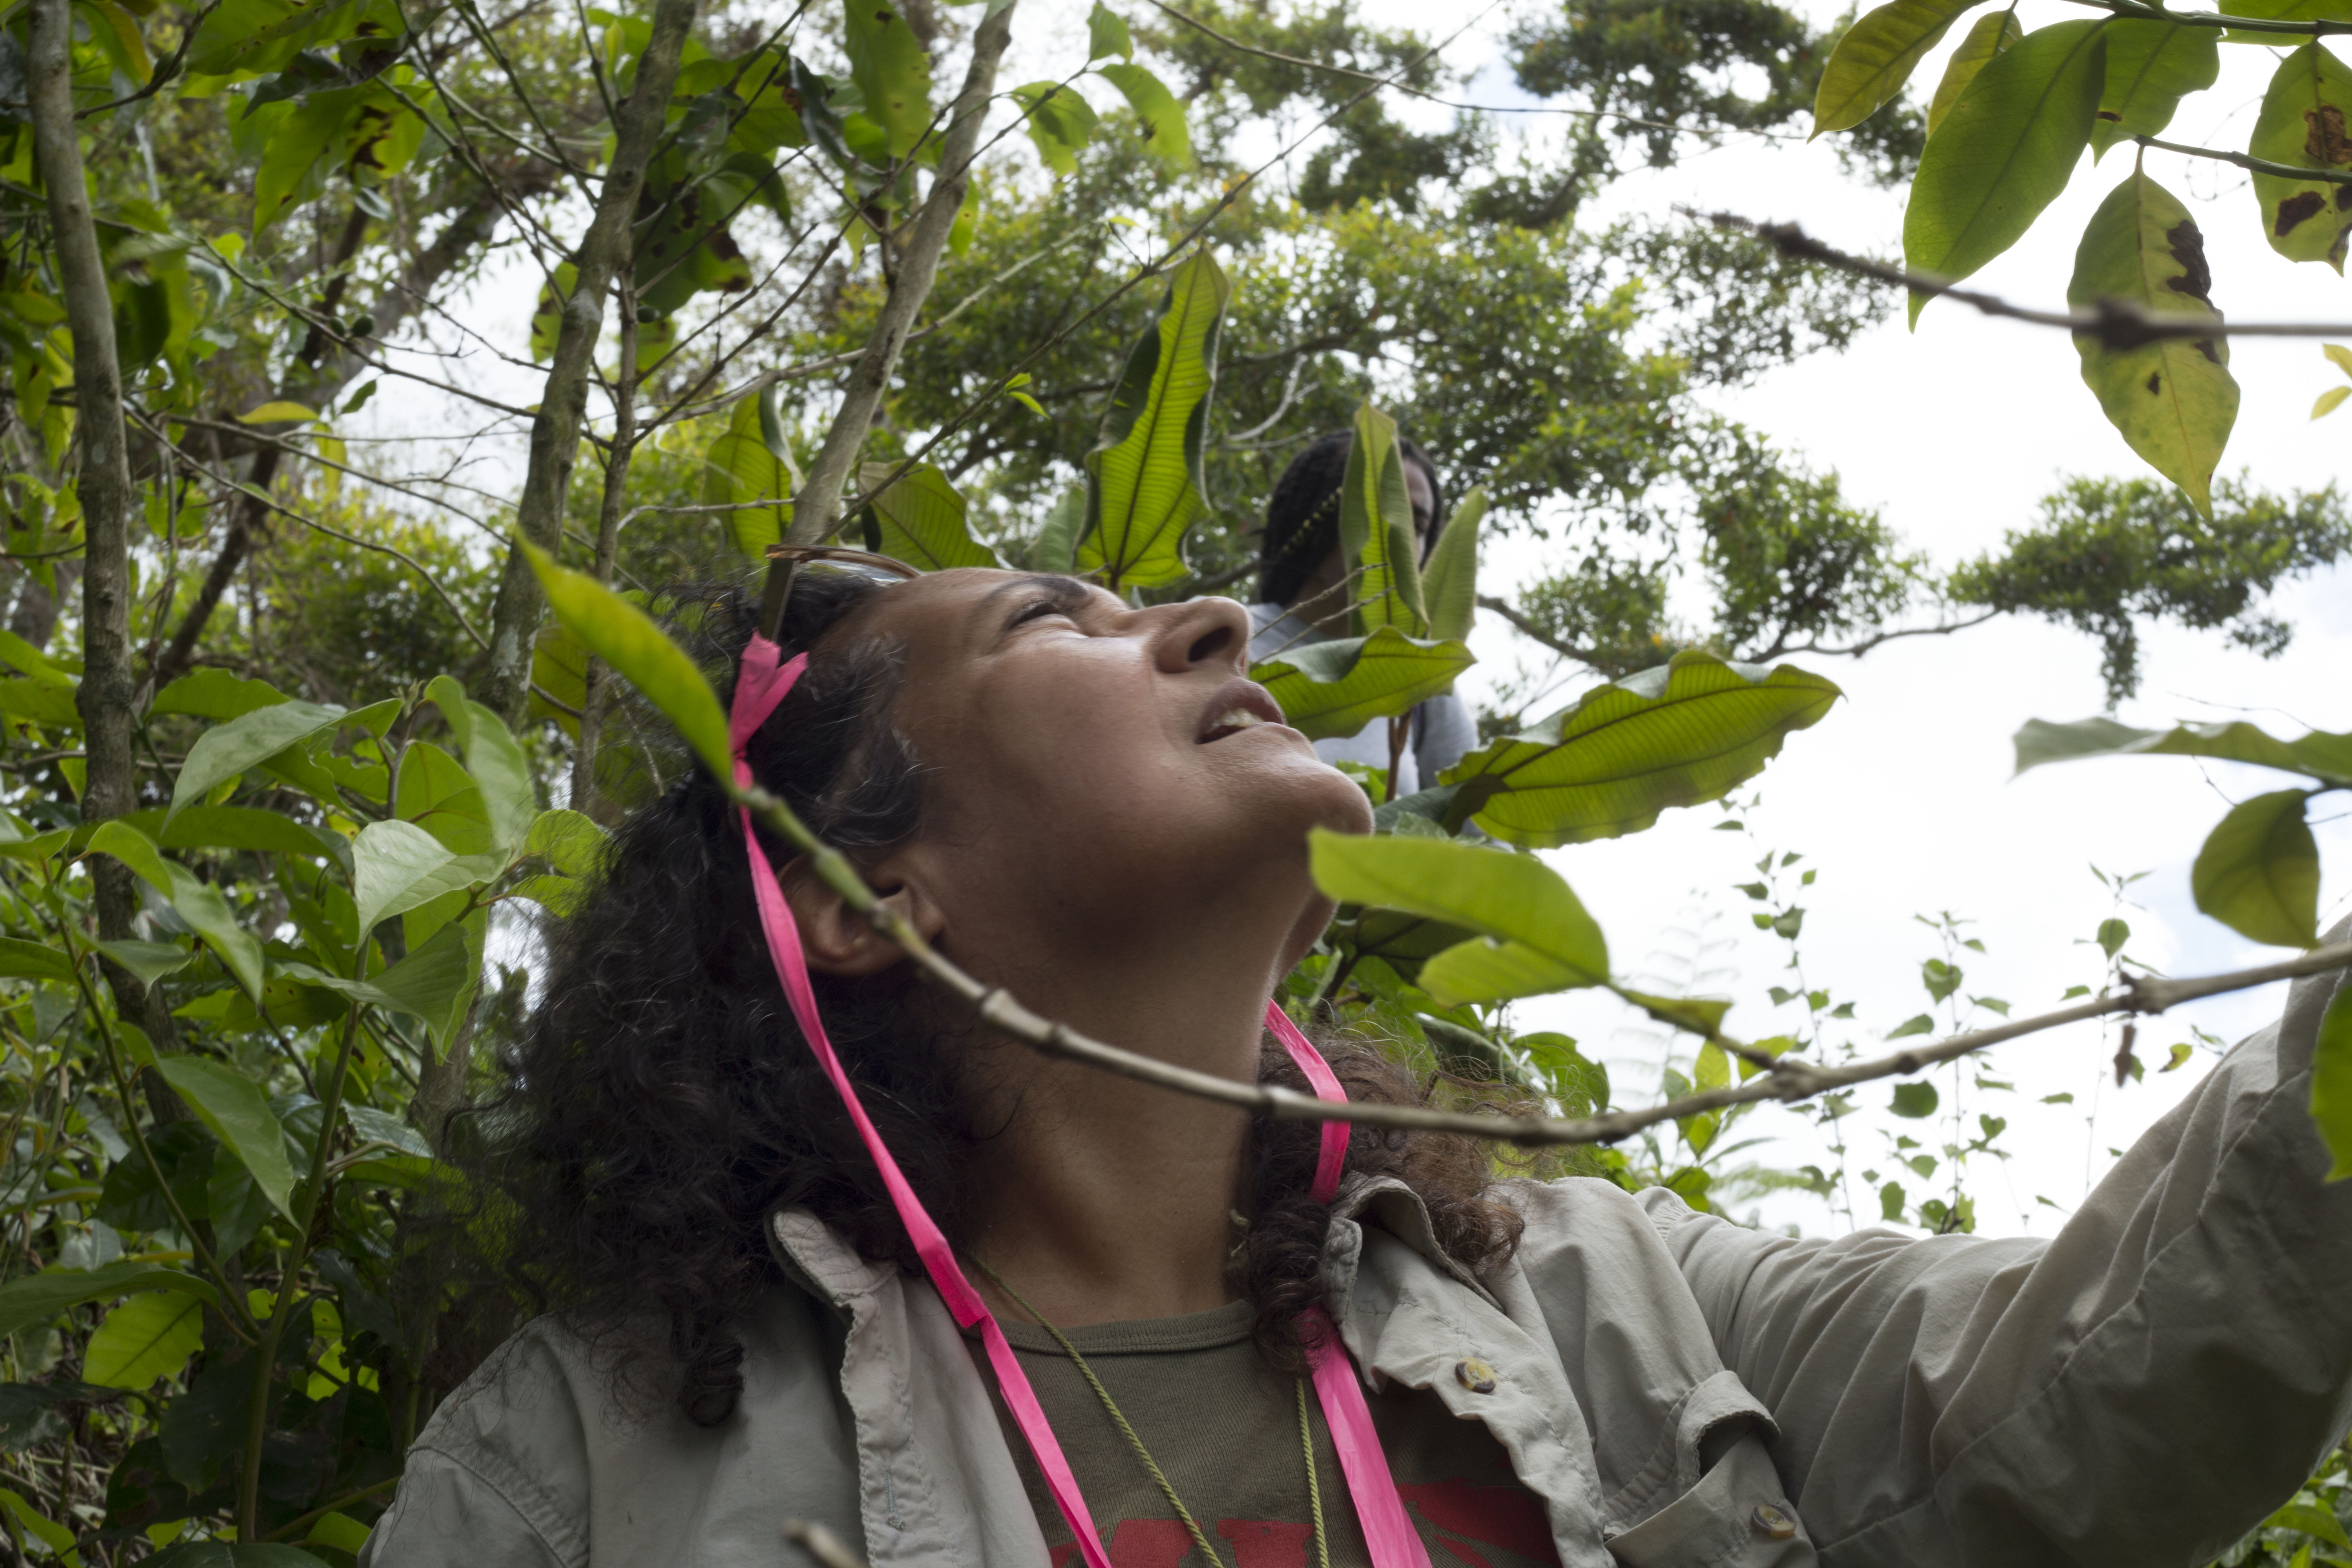 In July 2018, University of Michigan ecologist Ivette Perfecto looks at Hurricane Maria damage sustained at a coffee farm in Utuado, Puerto Rico. Image credit: Levi Stroud, U-M College of LSA